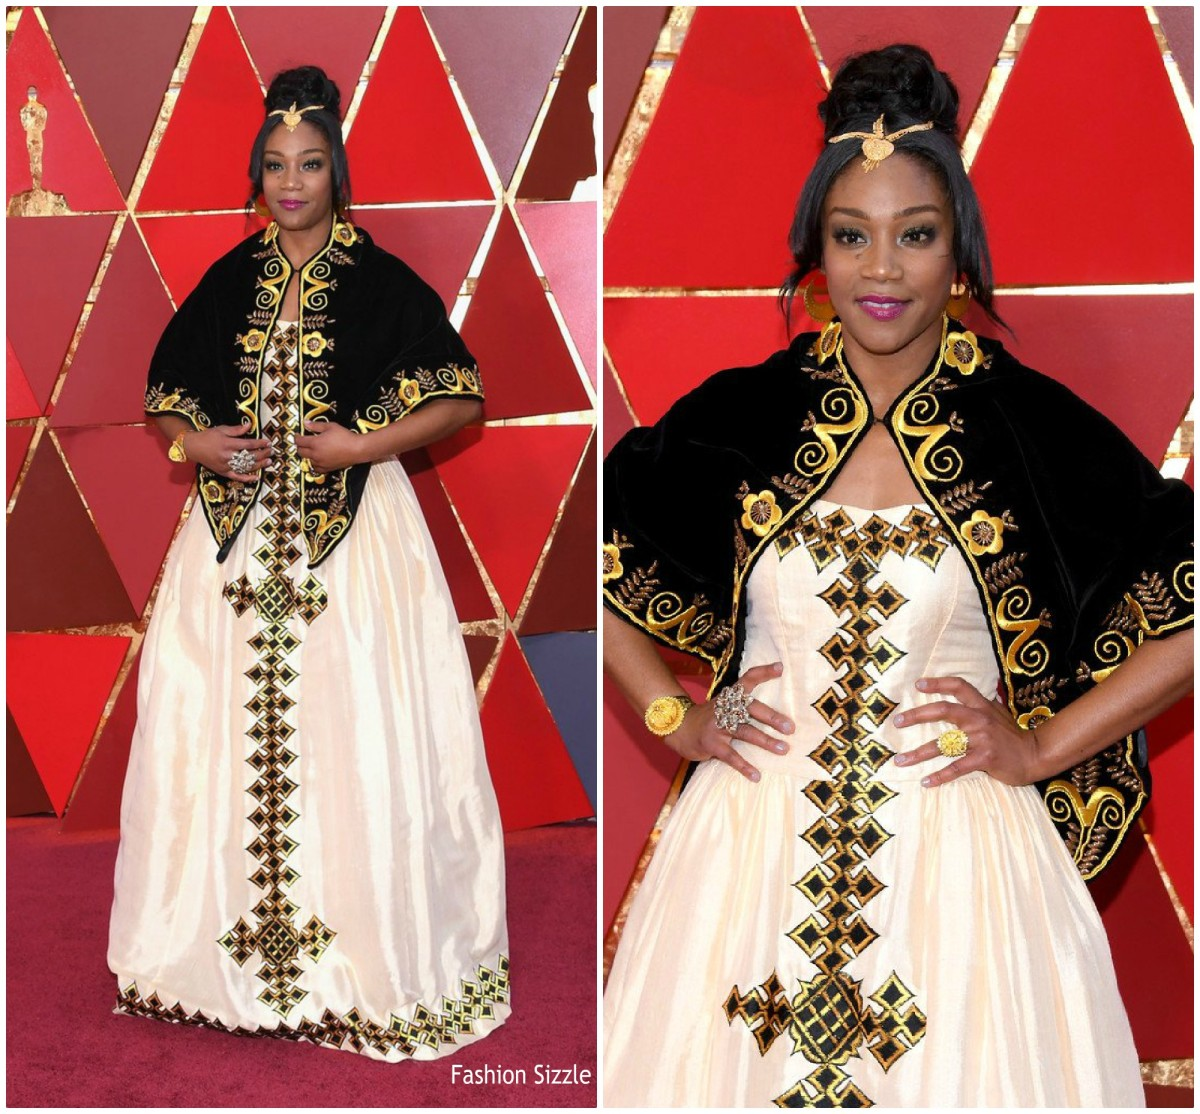 tiffany-haddish-in-tradional-eritrean-gown-2018-oscars